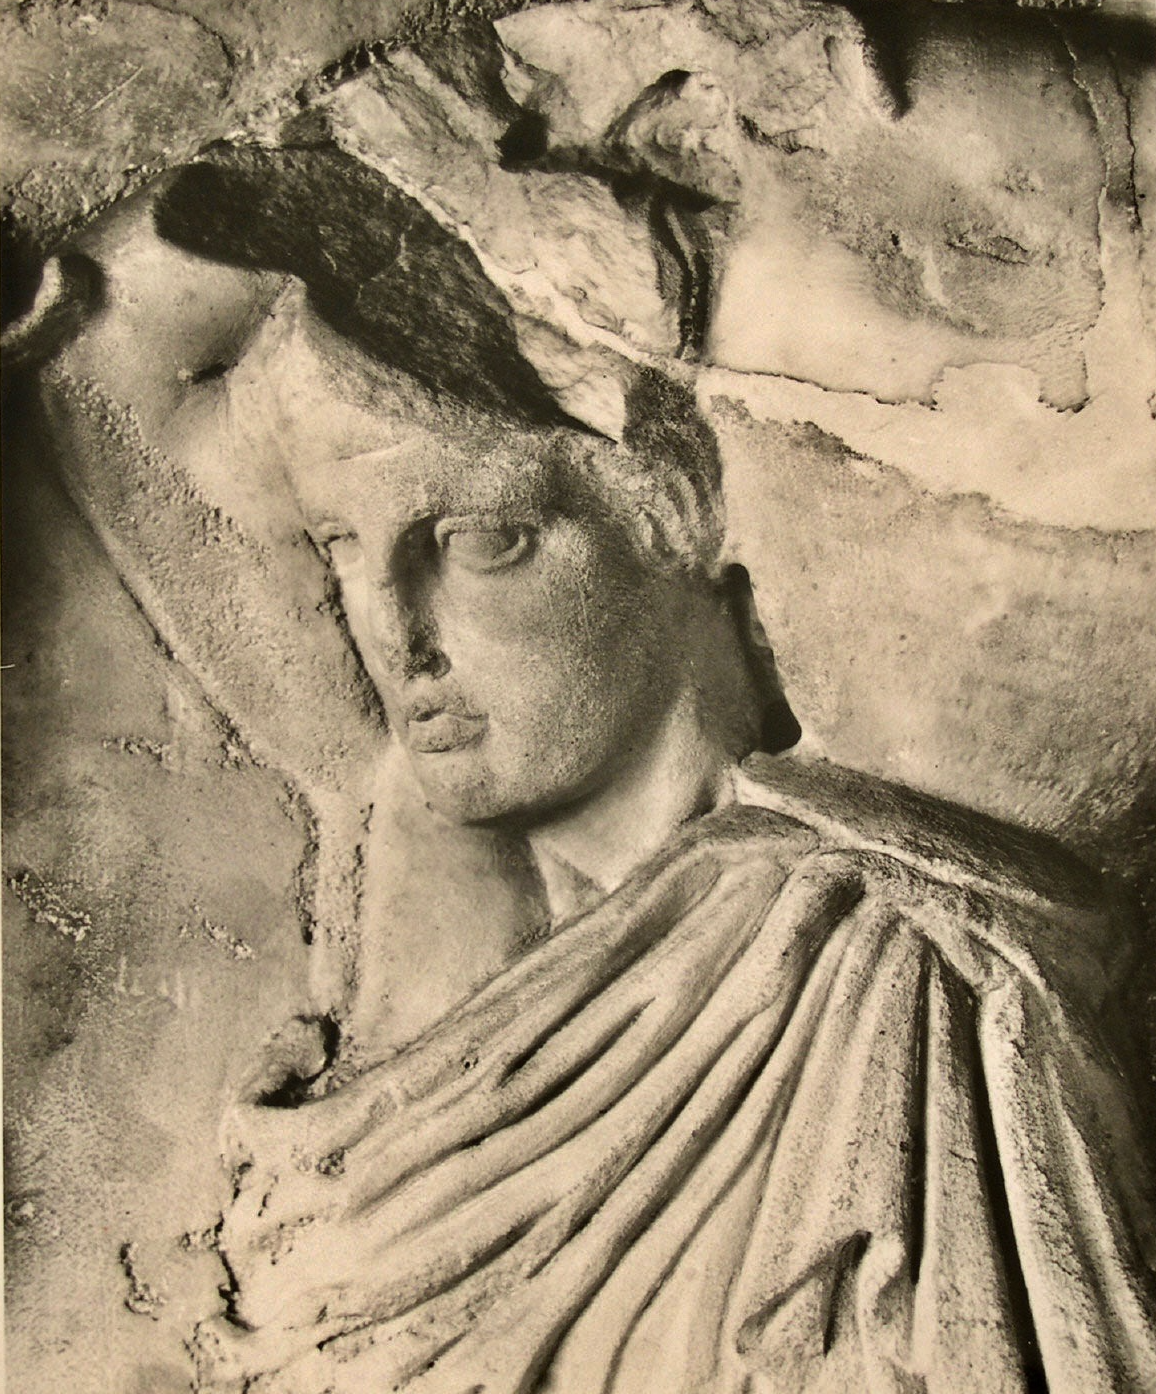 Walter Hedge, A Pitcher Bearer (detail) from the Parthenon's north frieze, circa 1930.The Acropolis Museum.